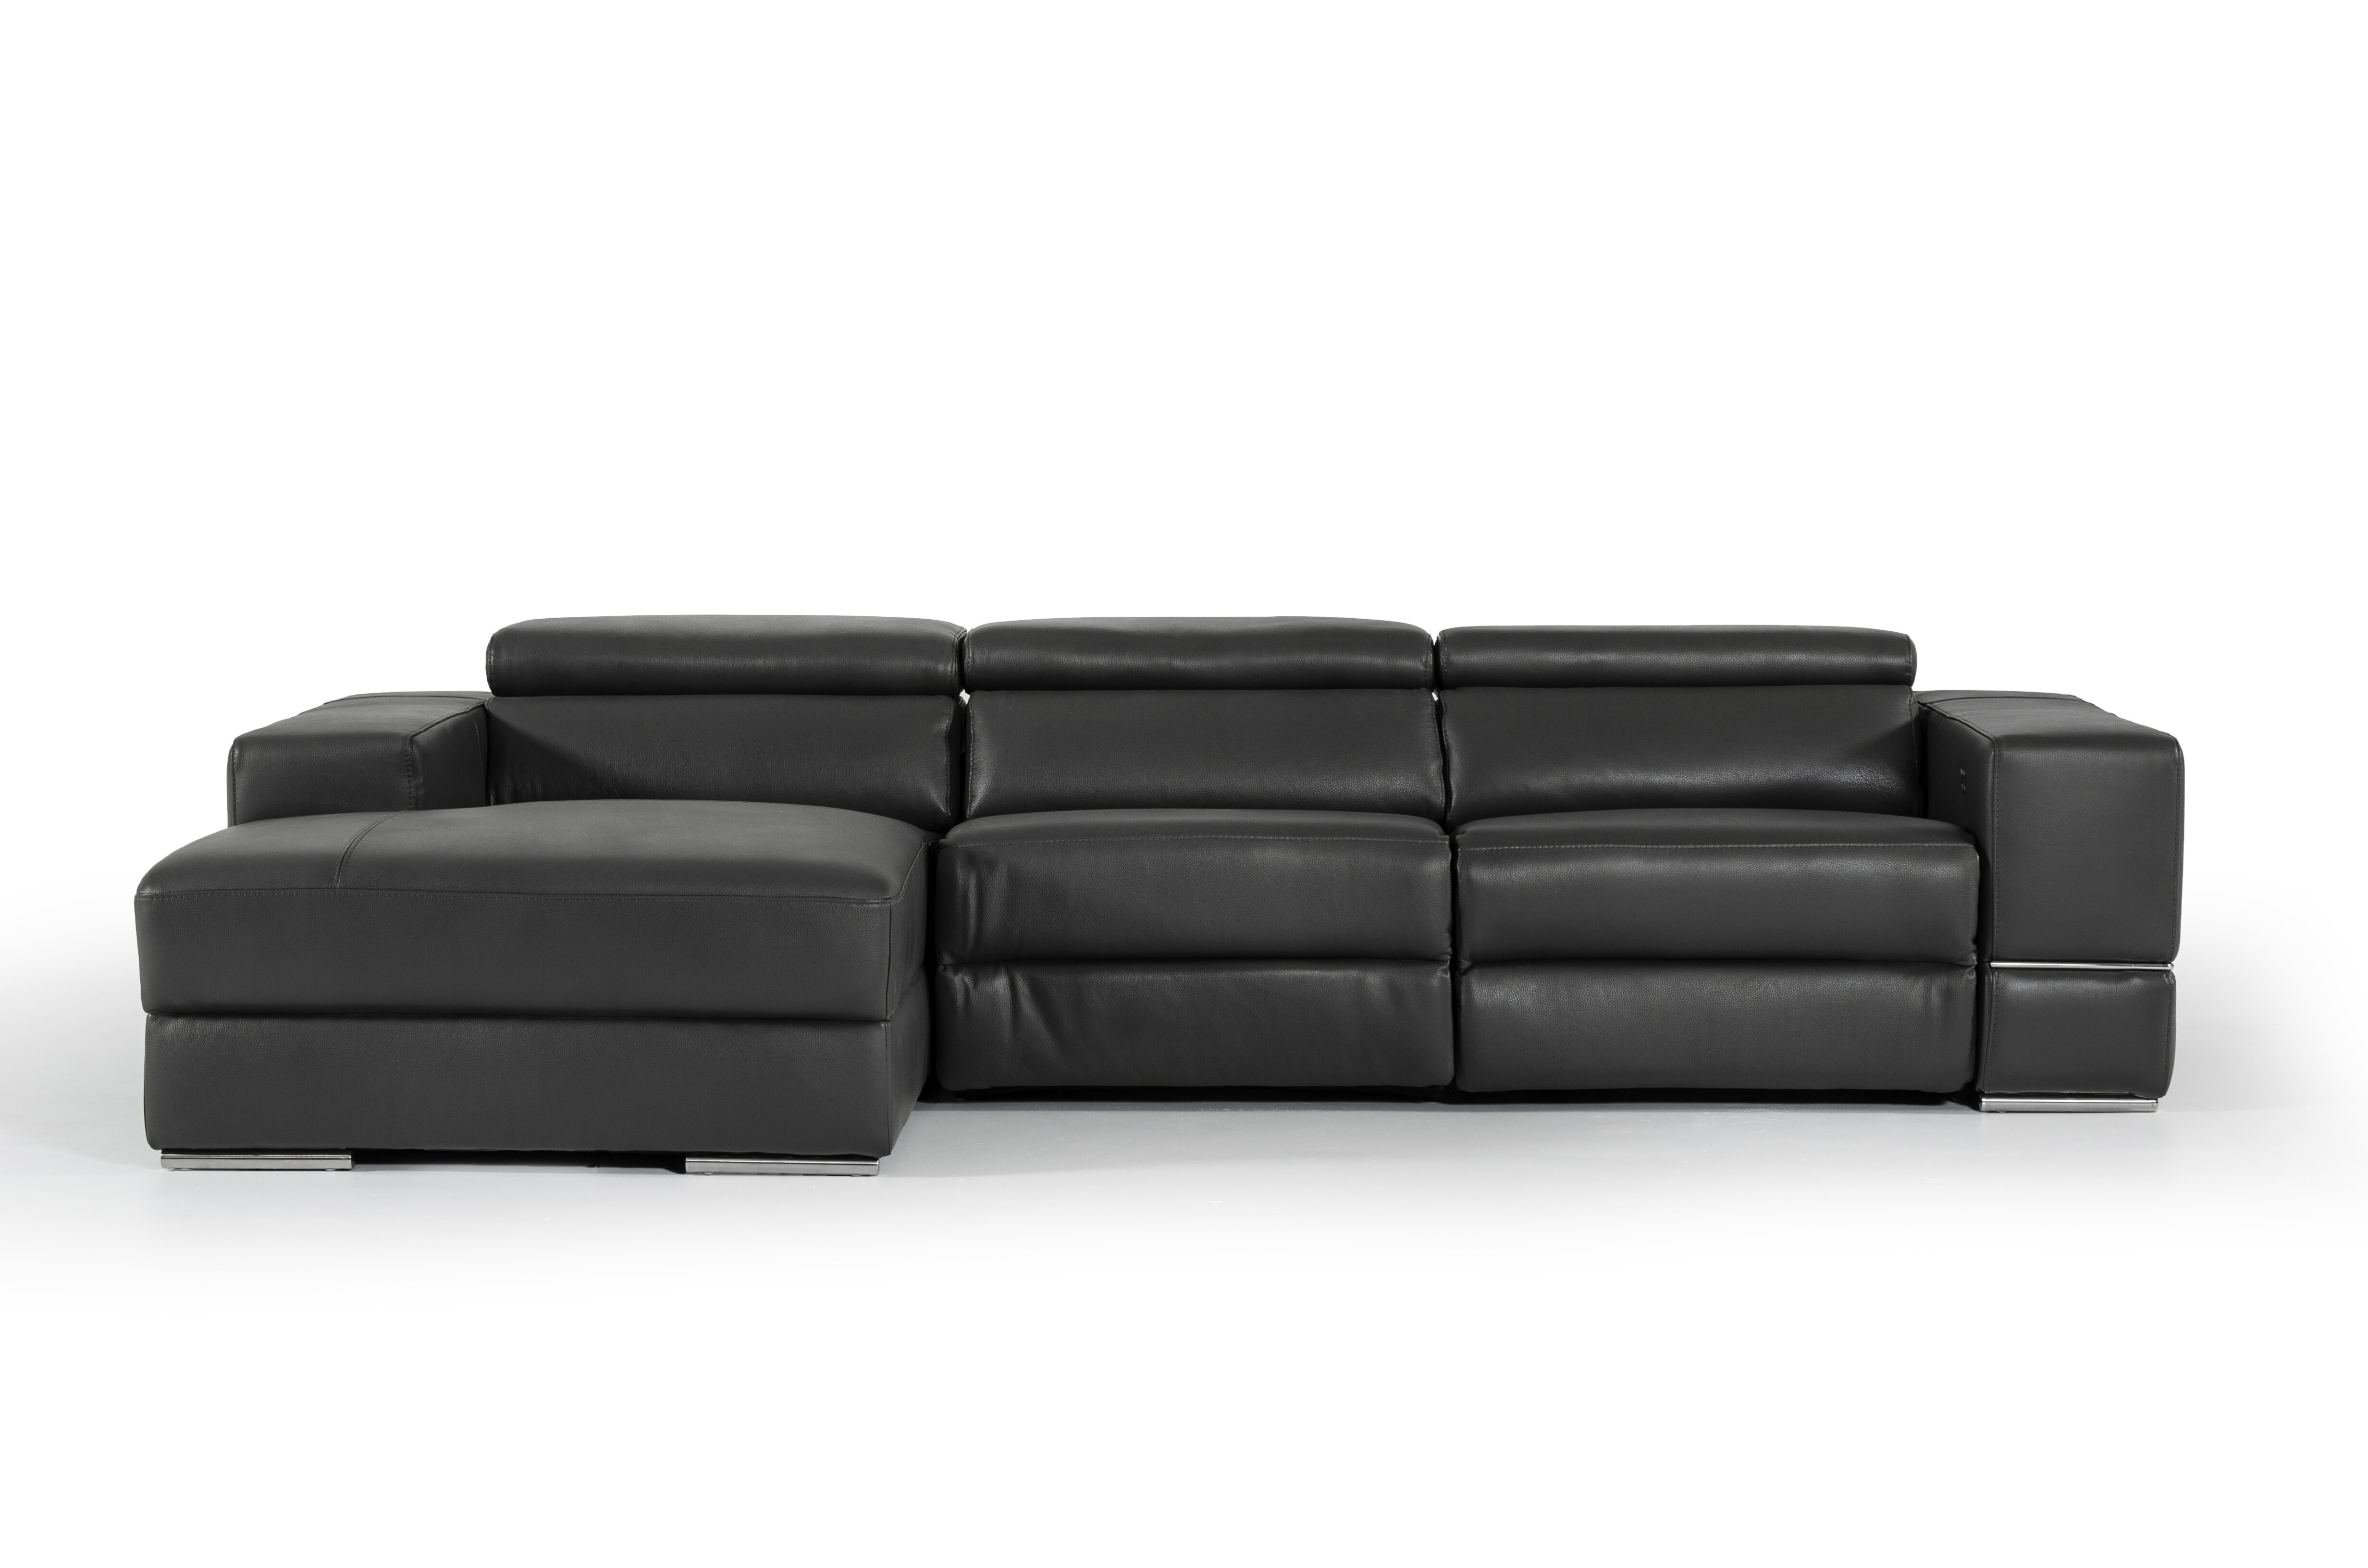 Admirable Galena Left Hand Facing L Shaped Leather Reclining Sectional Dailytribune Chair Design For Home Dailytribuneorg